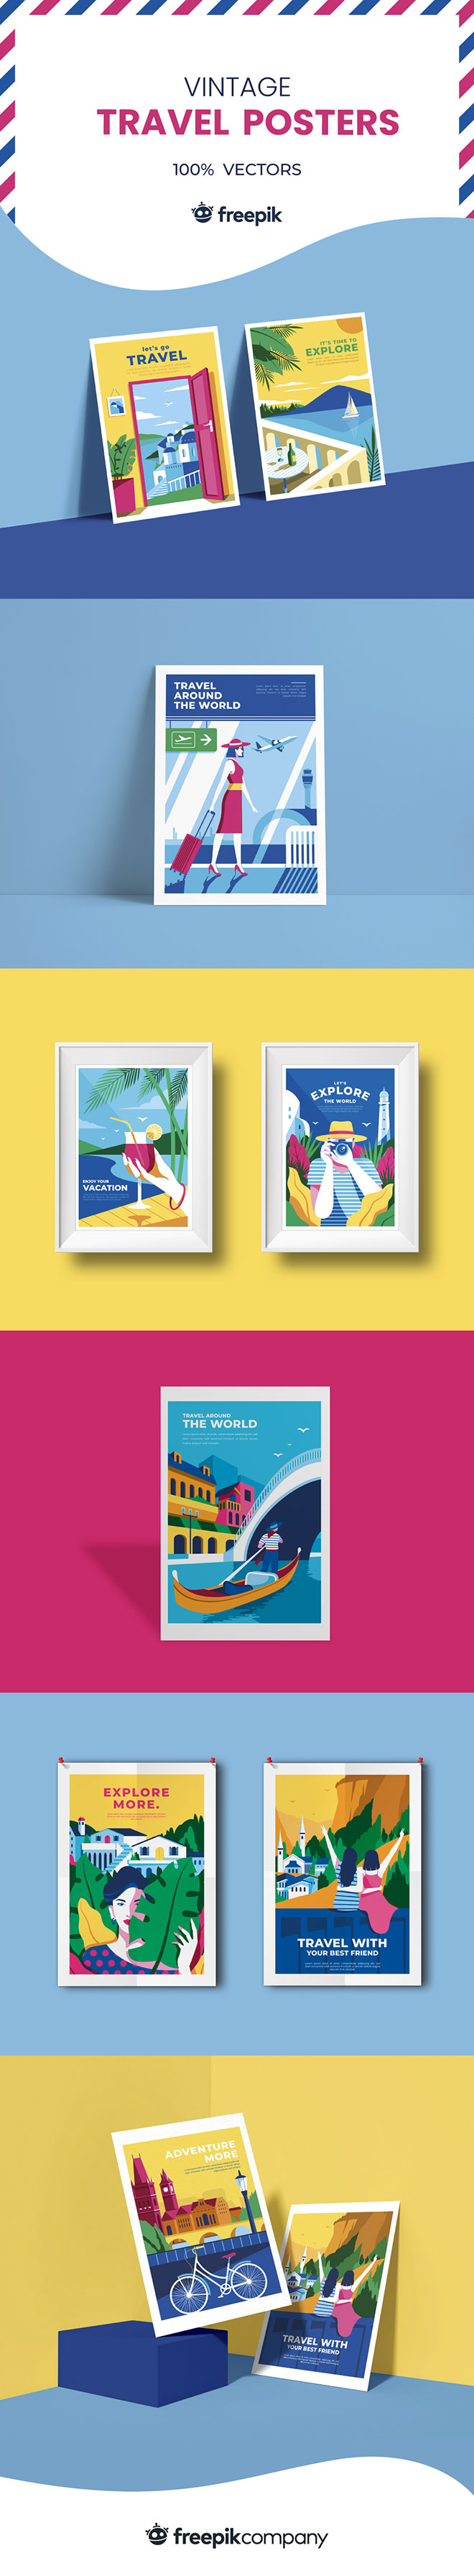 10 Vintage Travel Posters for Access All Areas Members